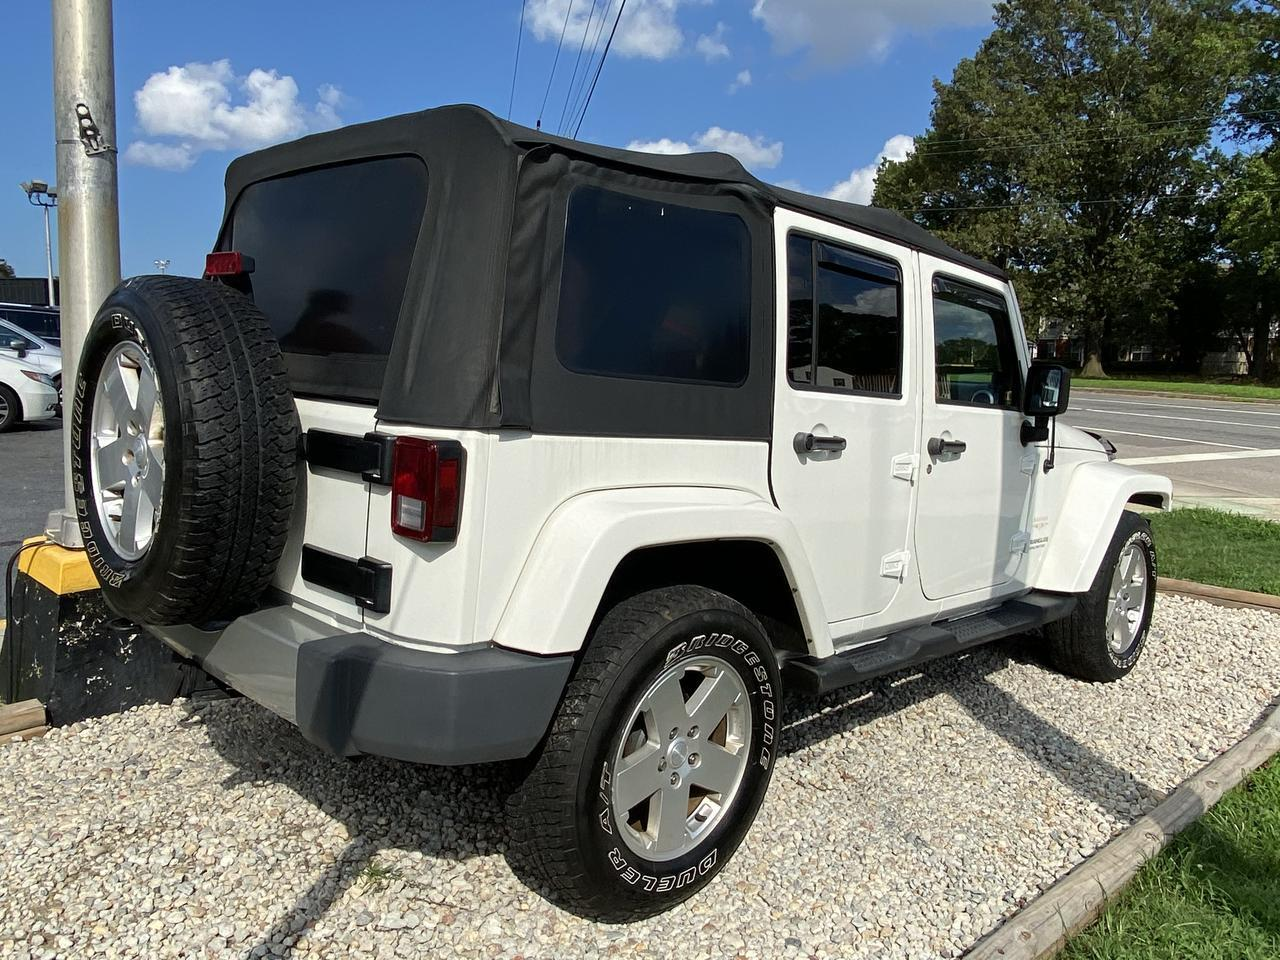 2010 JEEP WRANGLER UNLIMITED SAHARA 4X4, WARRANTY, LIFTED, SOFT TOP, RUNNING BOARDS, TOW PKG, SIRIUS RADIO! Norfolk VA